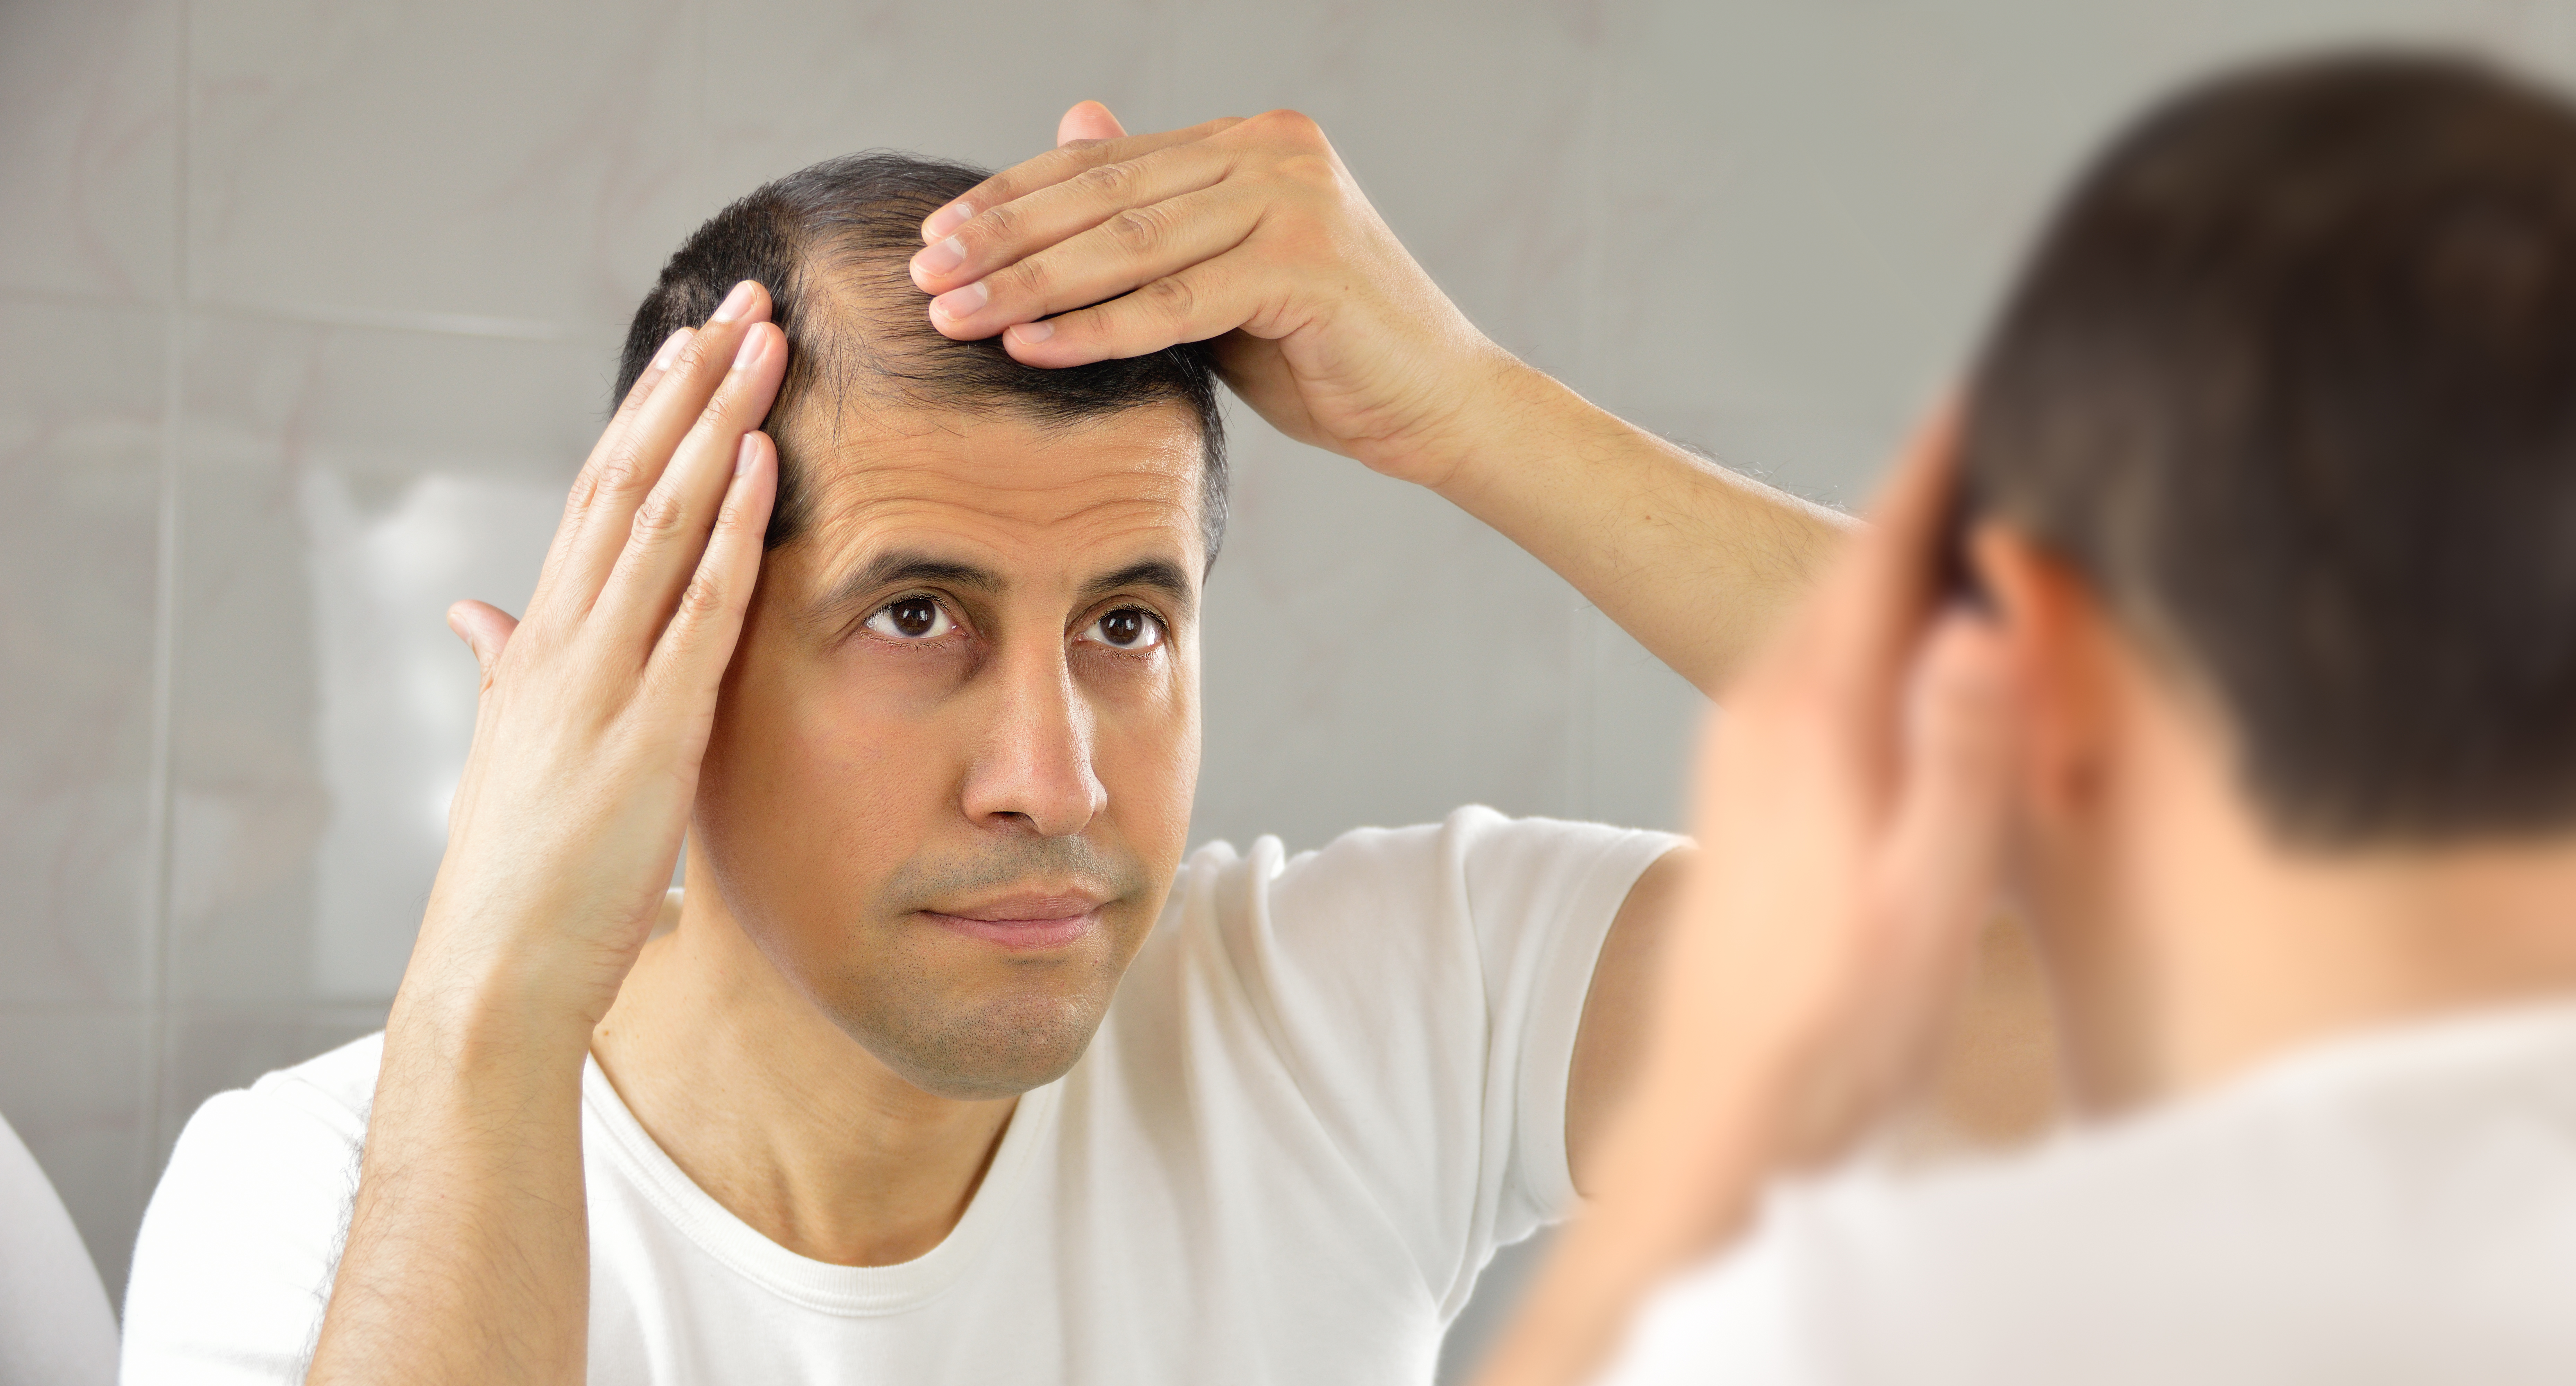 The only things that actually cure baldness, according to